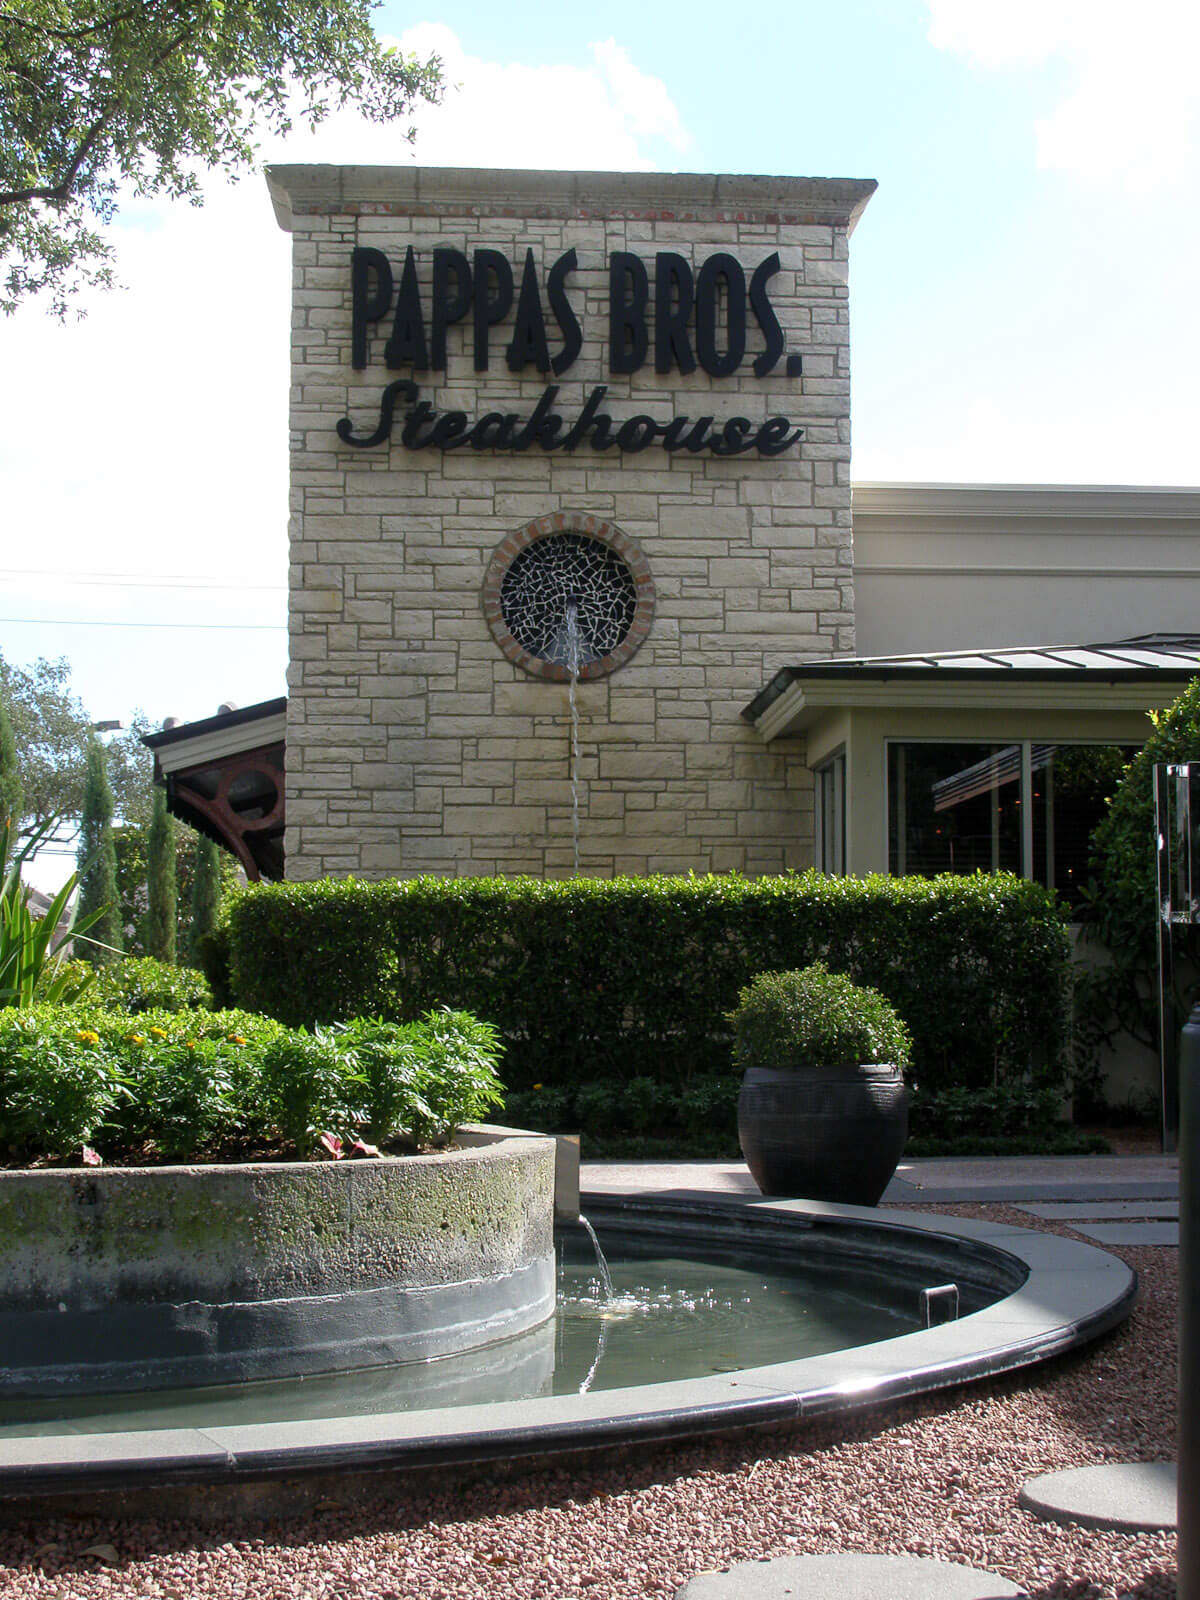 Places-Food-Pappas Bros. exterior day